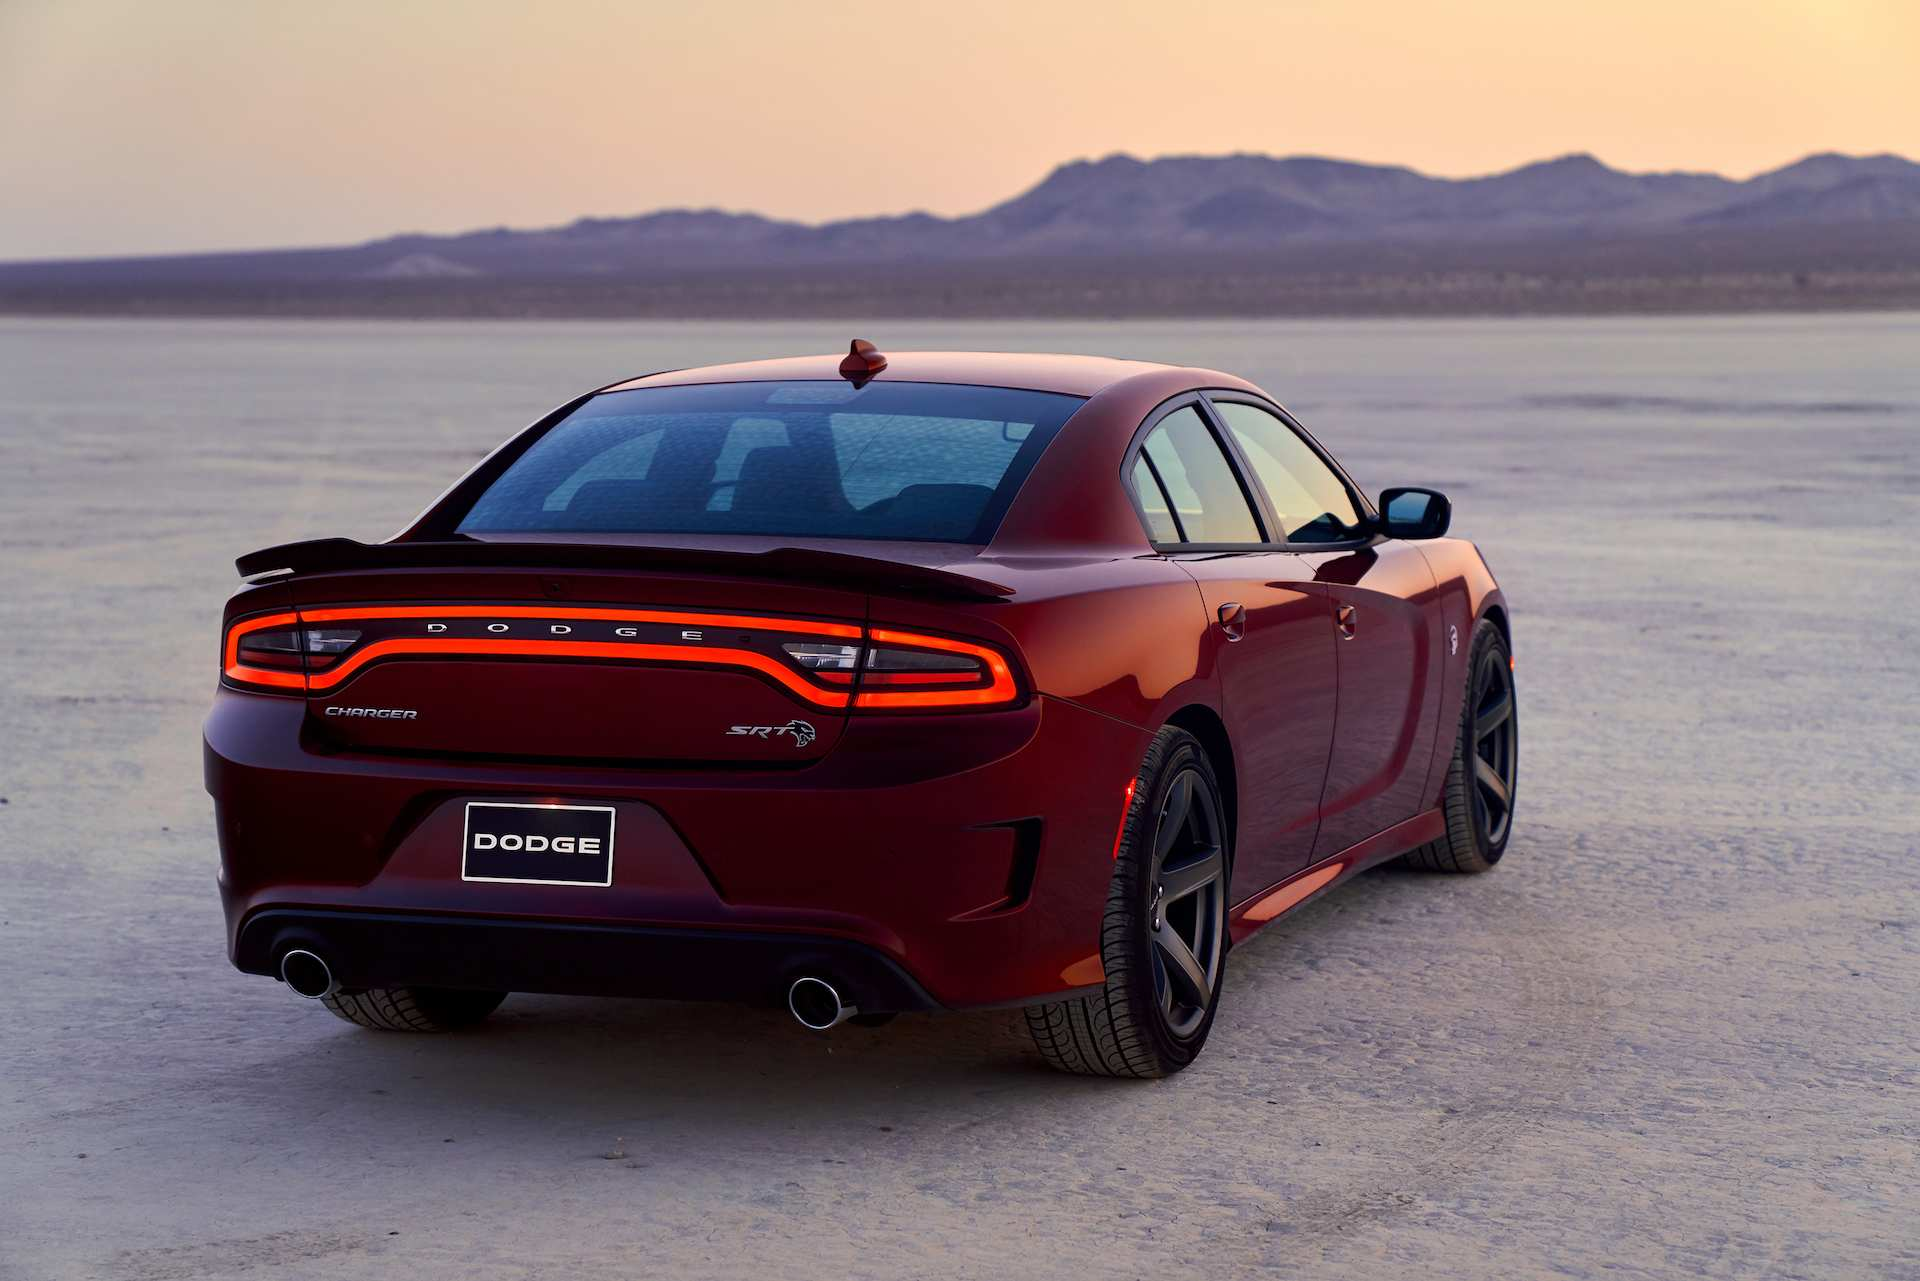 58 Gallery of Dodge Charger Redesign 2020 Spesification with Dodge Charger Redesign 2020